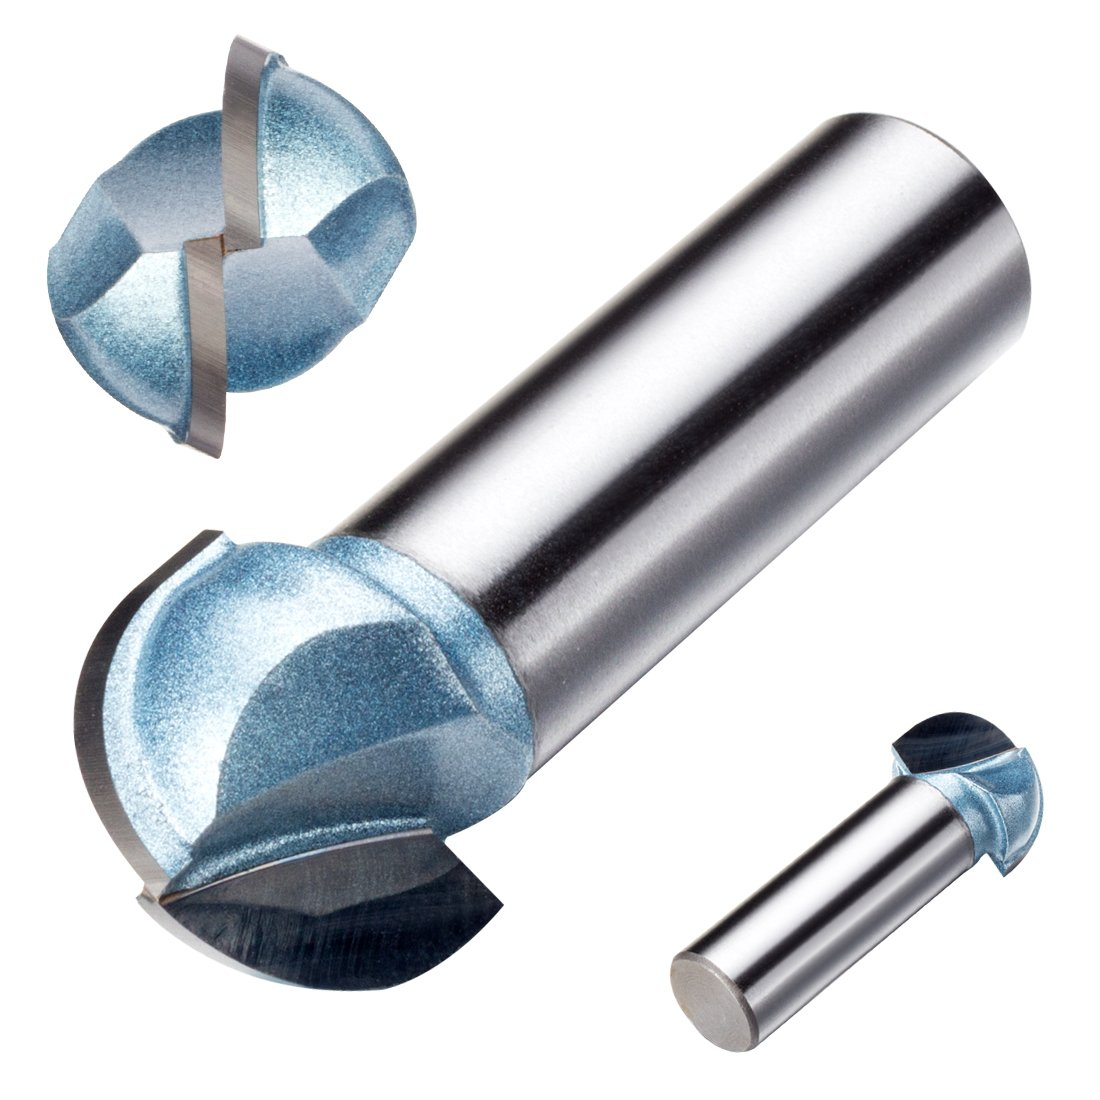 uxcell 3/4-inch Cutting Dia, 1/2-inch Steel Shank 2-Flute, Carbide Tipped Cove Core Box Router Bit